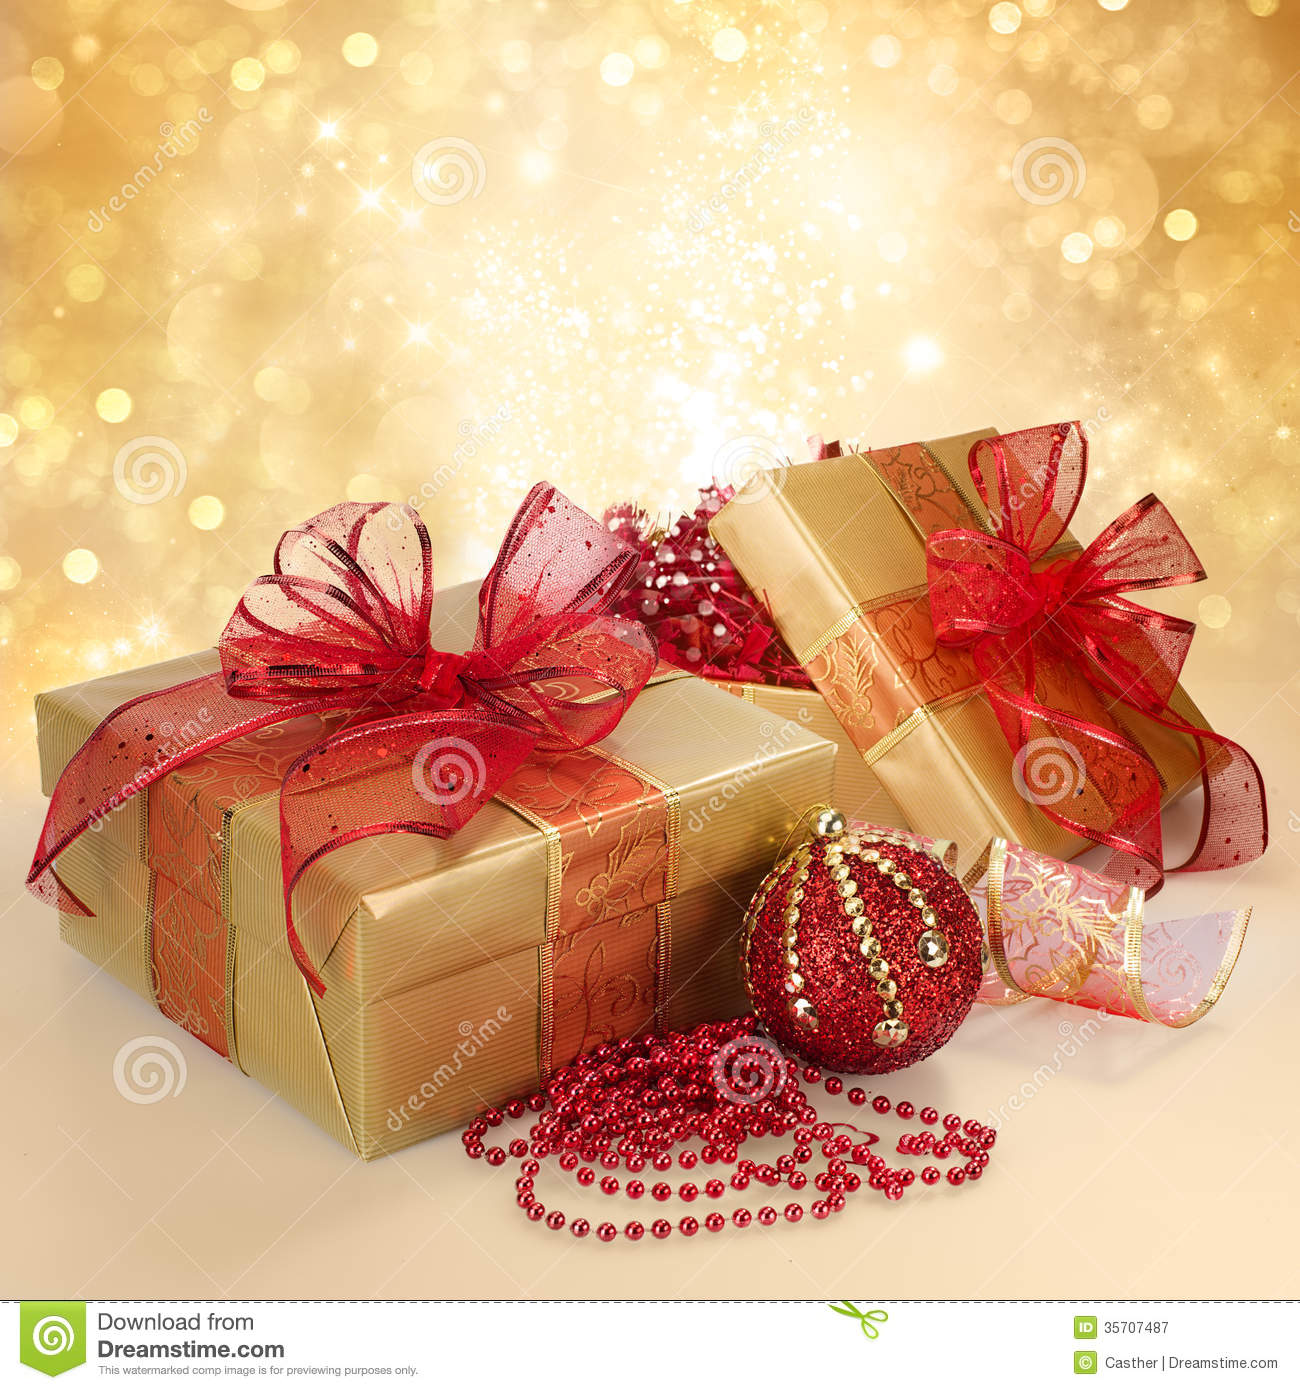 Christmas gift box and decorations in gold and red royalty free stock